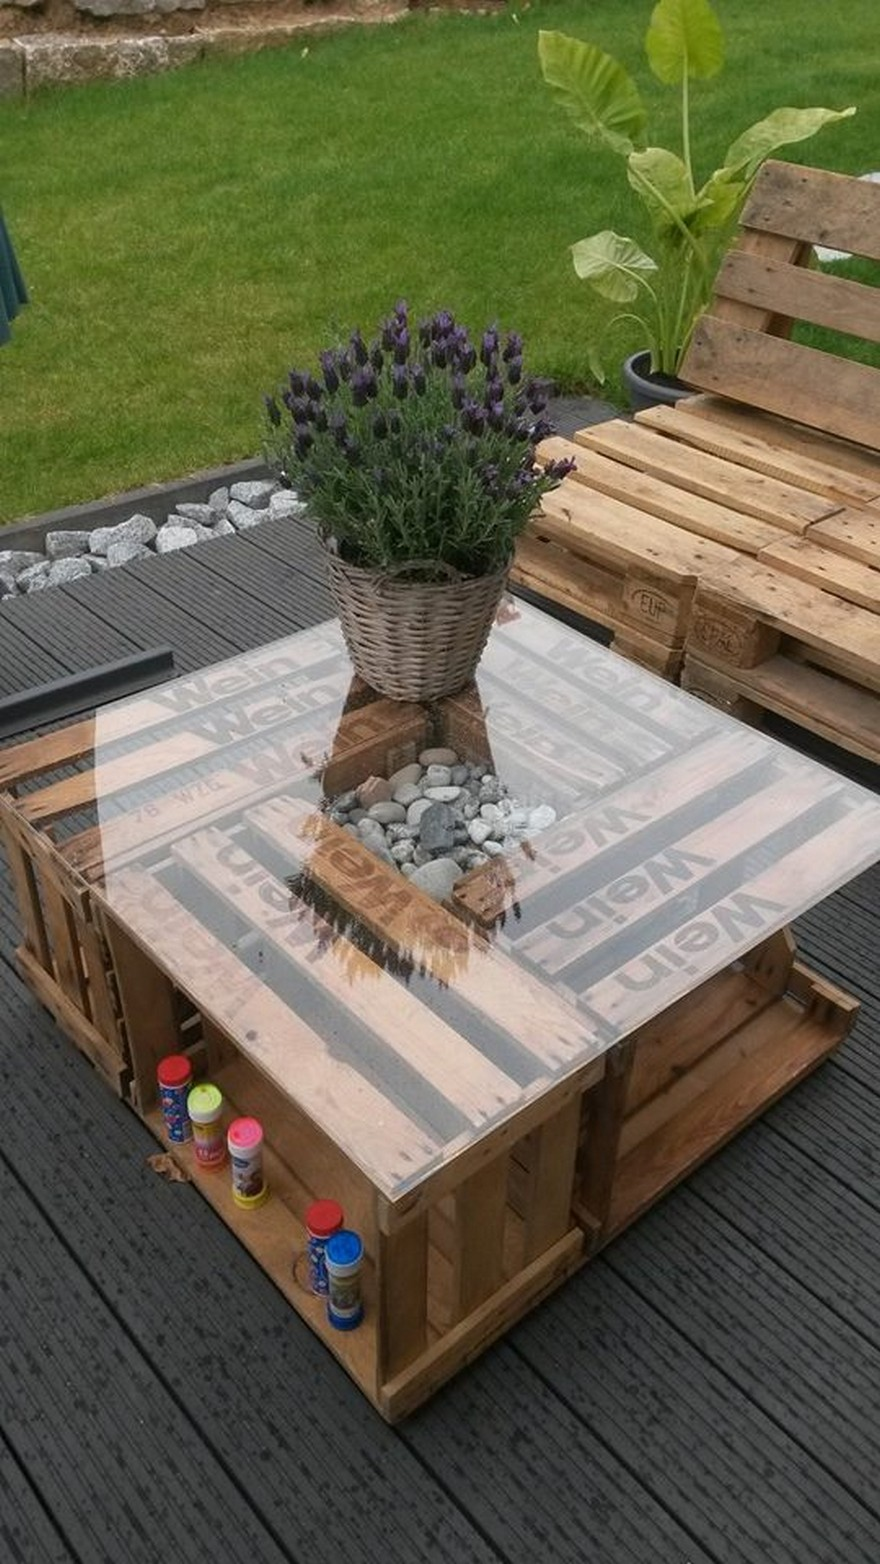 Wonderful pallet wood ideas pallet ideas recycled Pallet ideas